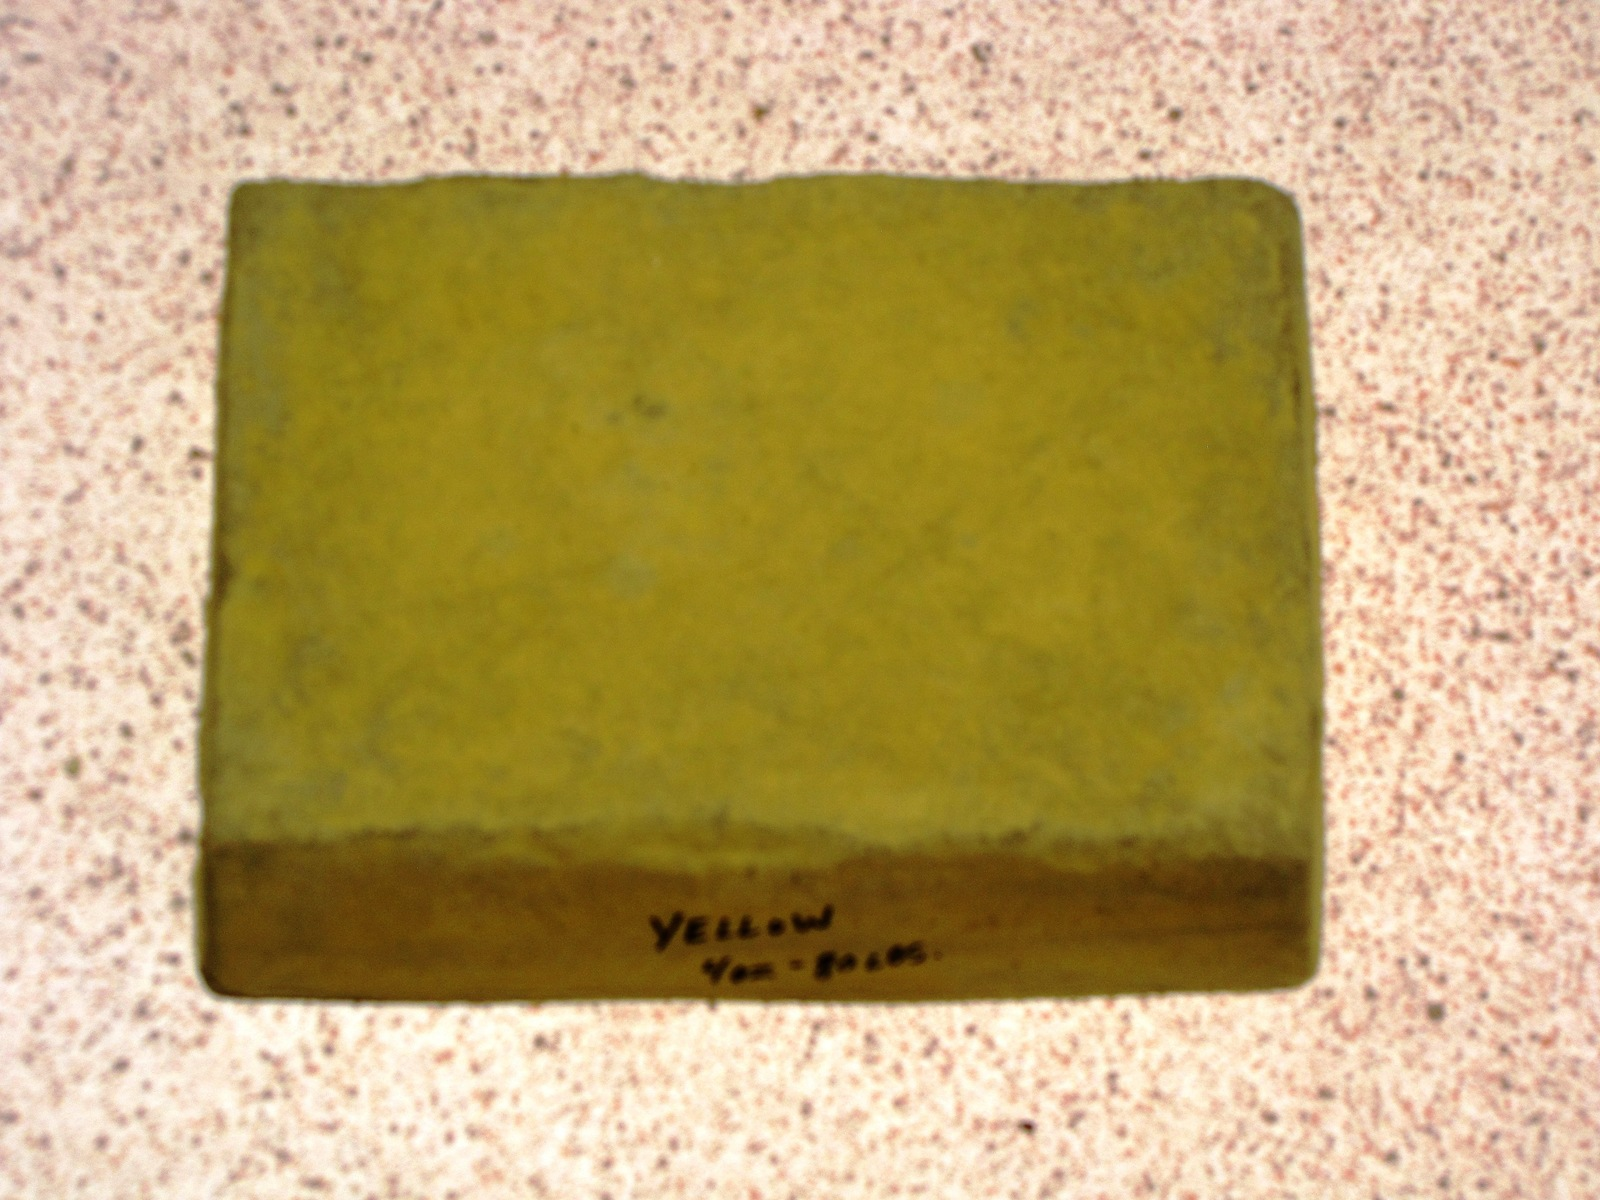 1 LB. YELLOW POWDER TO COLOR CONCRETE, CEMENT, PLASTER, GROUT OR BRICK VENEER